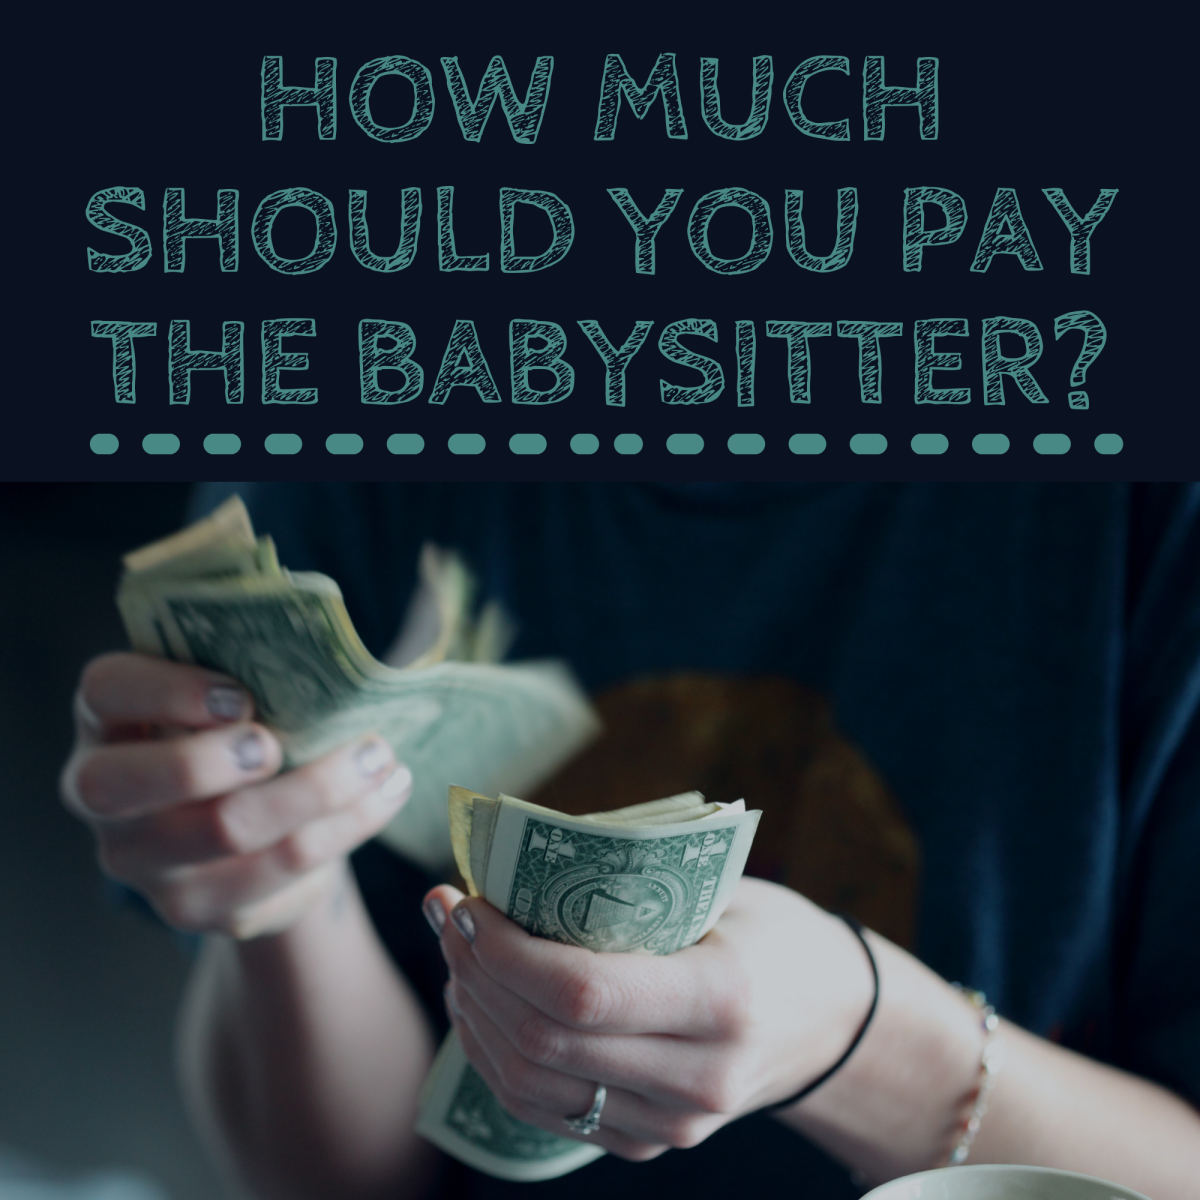 How much should you pay the babysitter?